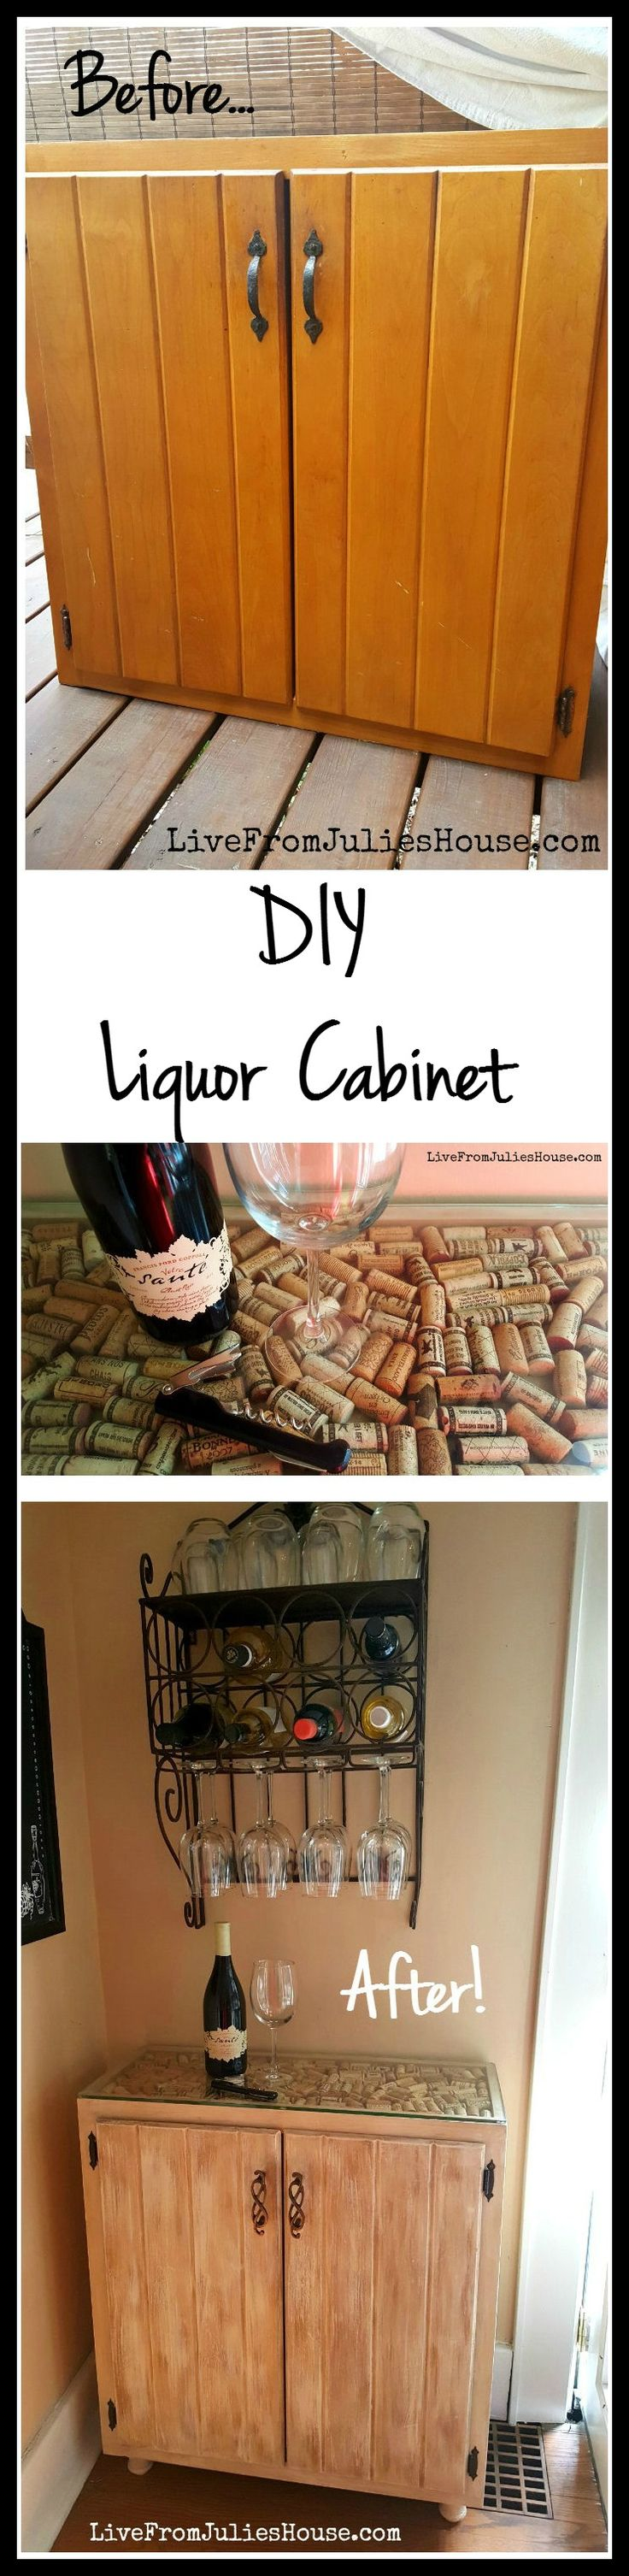 Diy kitchen cabinets gauteng - Diy Liquor Cabinet I Created A Budget Friendly Diy Liquor Cabinet Out Of A Sad Looking Kitchen Cabinet With The Addition Of Some Paint Wine Corks And New